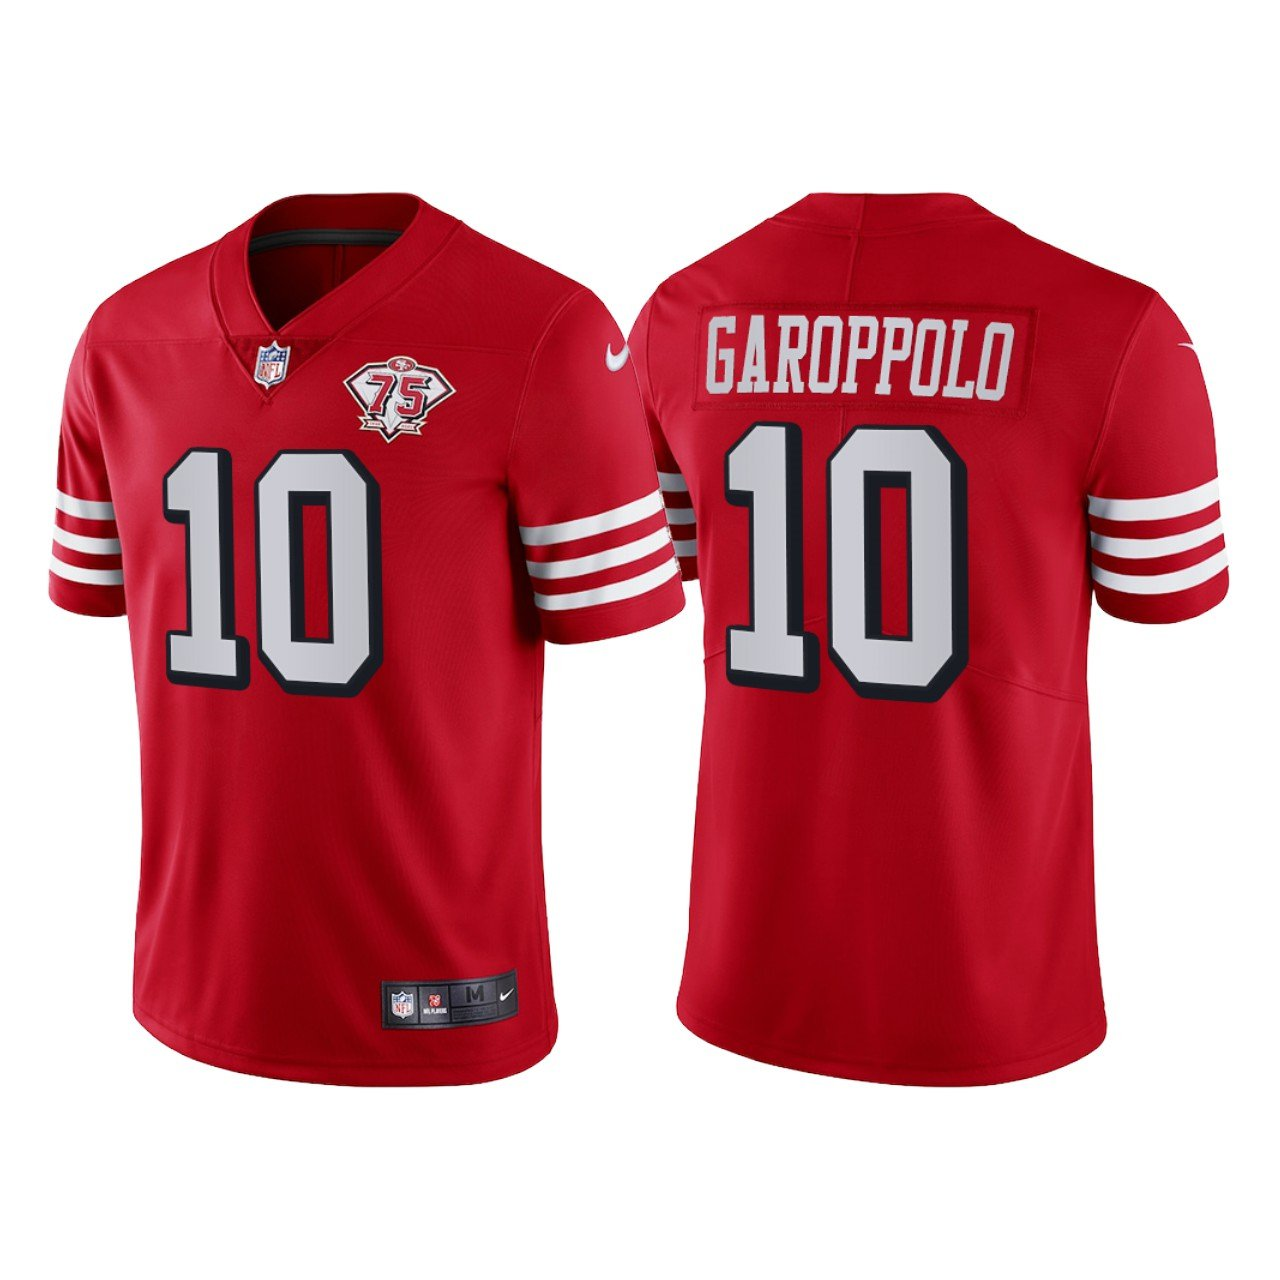 Men's #10 Jimmy Garoppolo San Francisco 49ers Red Throwback Limited Jersey 75th Anniversary Stitched